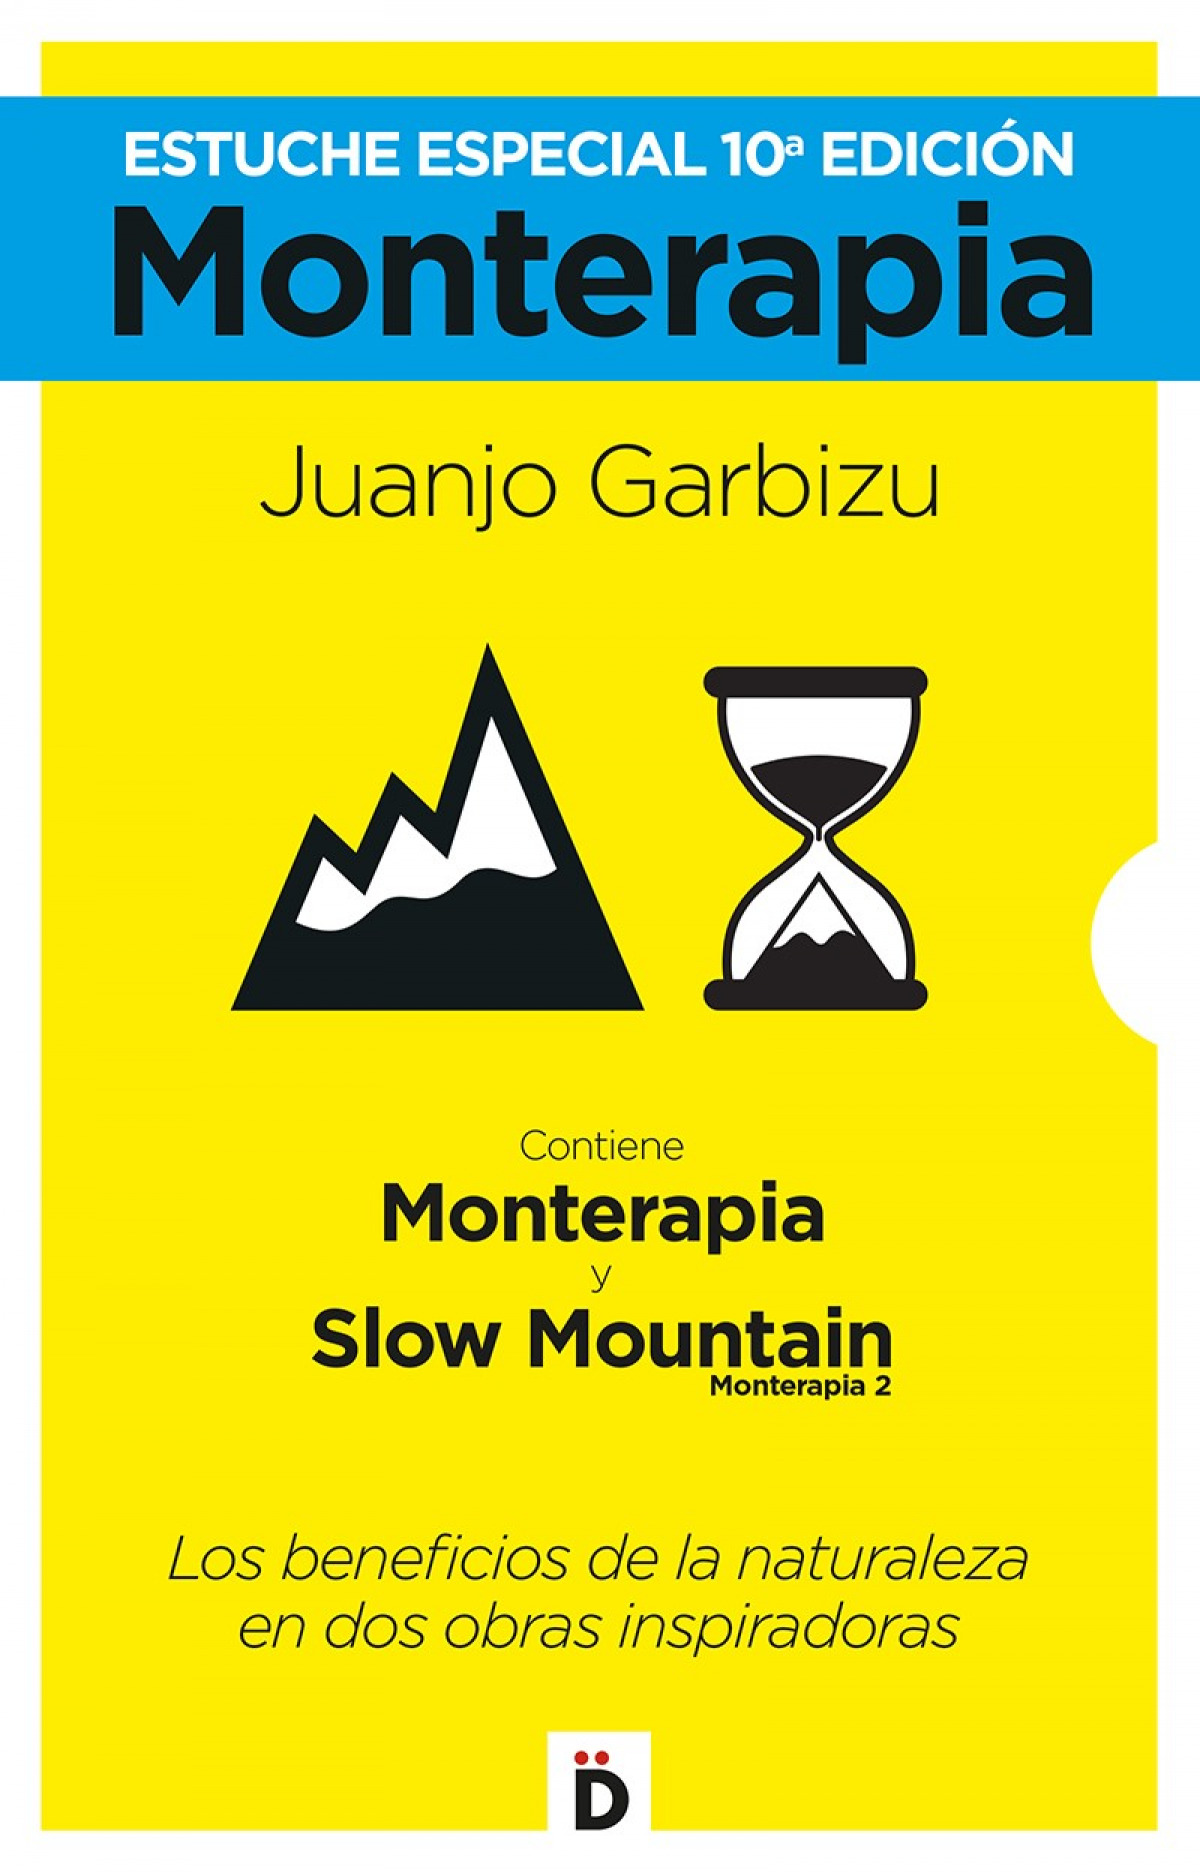 Monterapia 10ª edición Slow Mountain